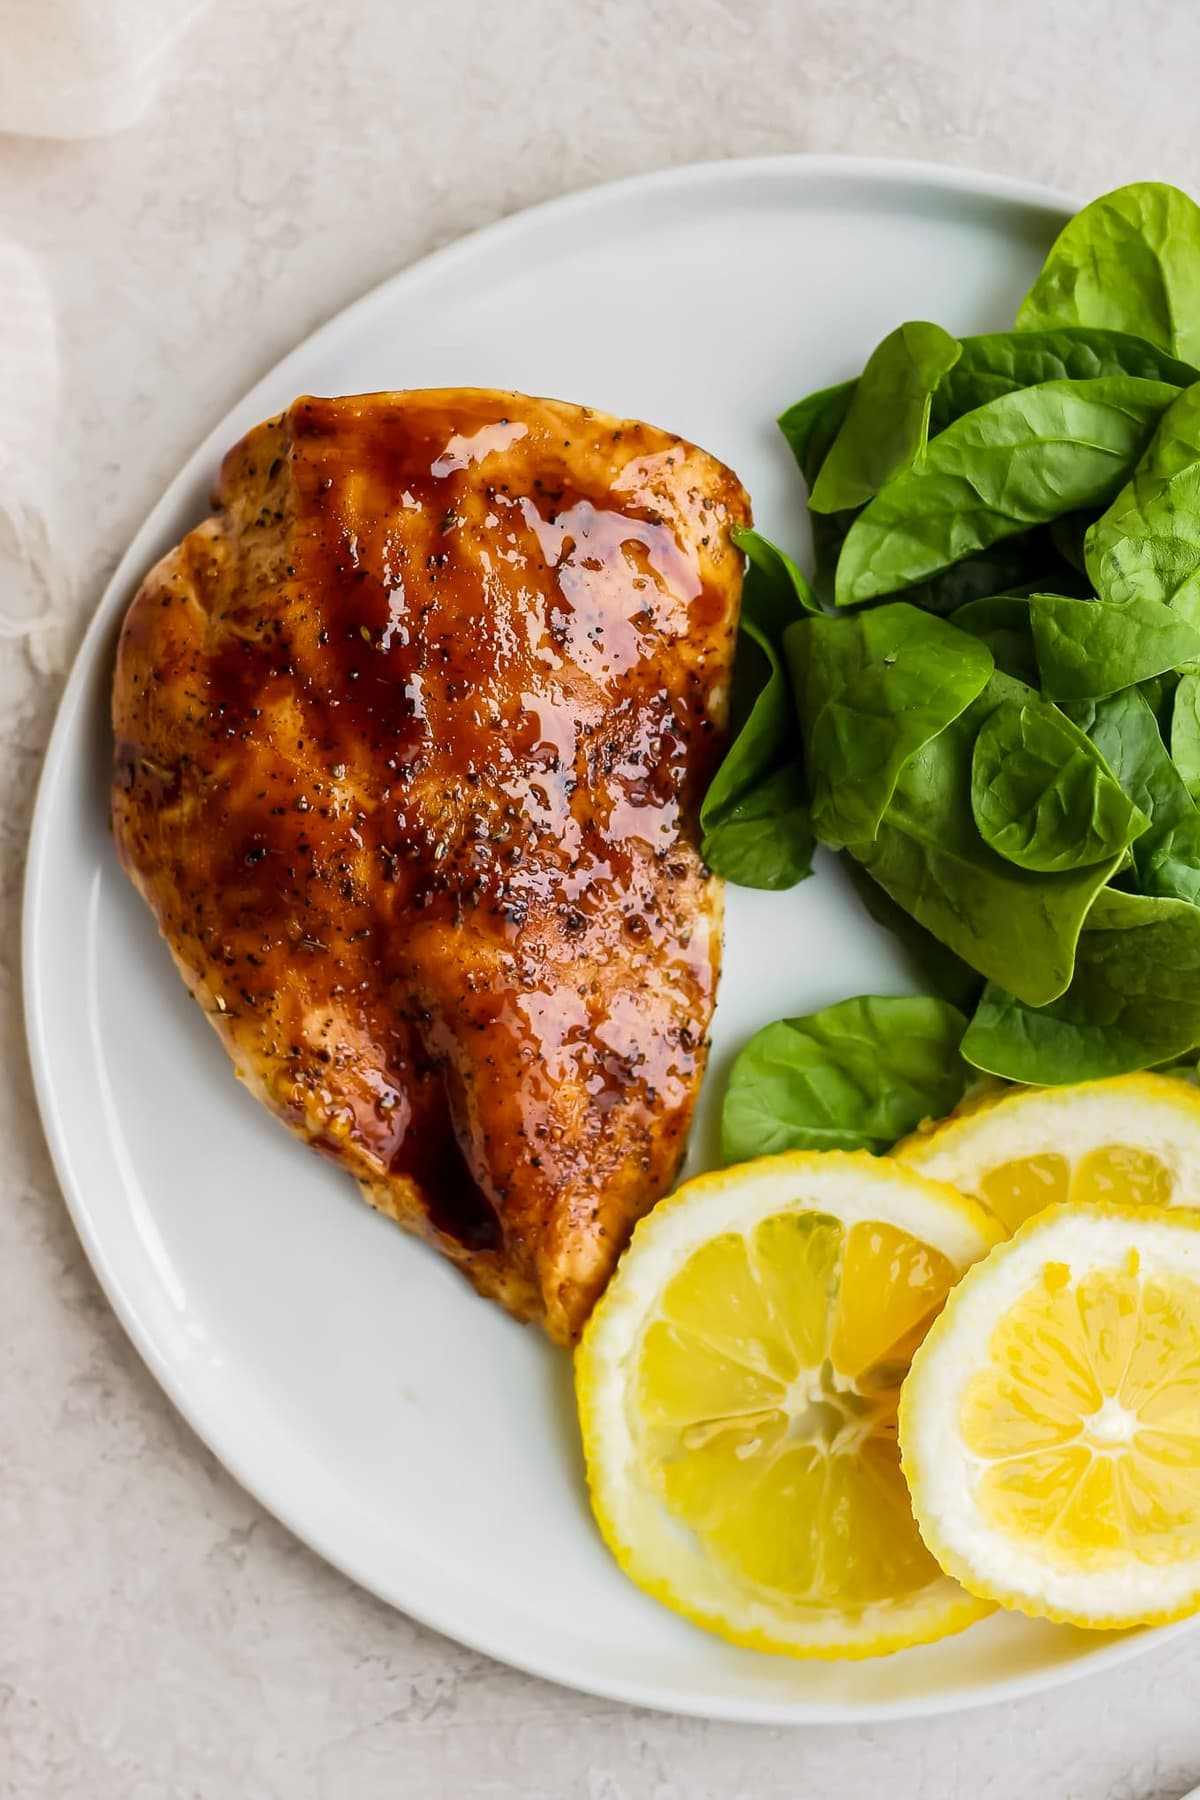 balsamic glazed chicken breast on a plate